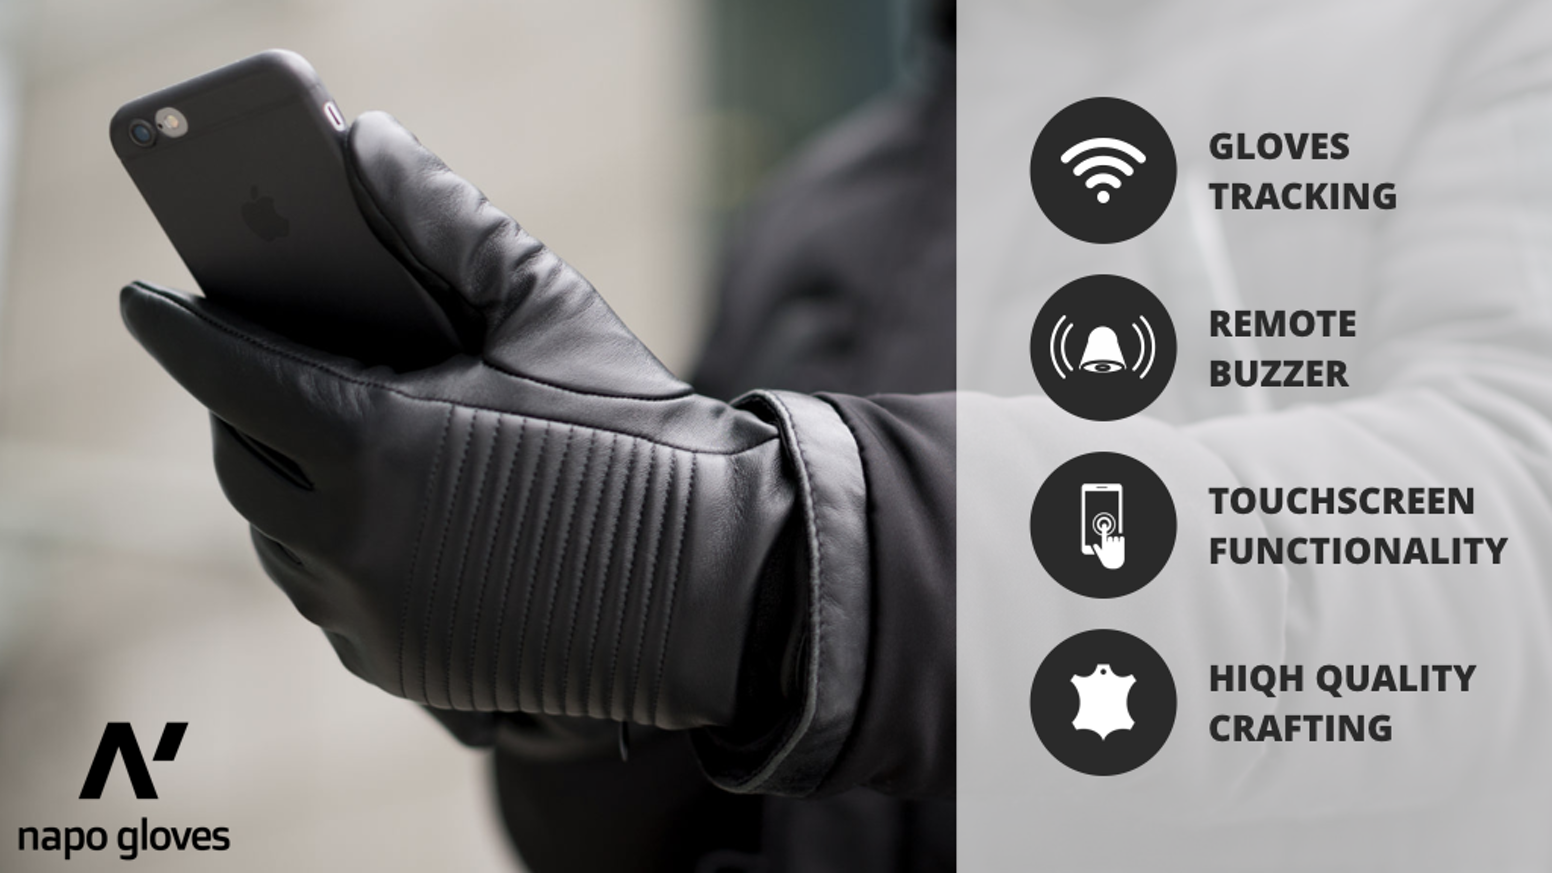 Smart leather gloves for the modern men with gloves tracking, remote buzzer and touchscreen functionality.